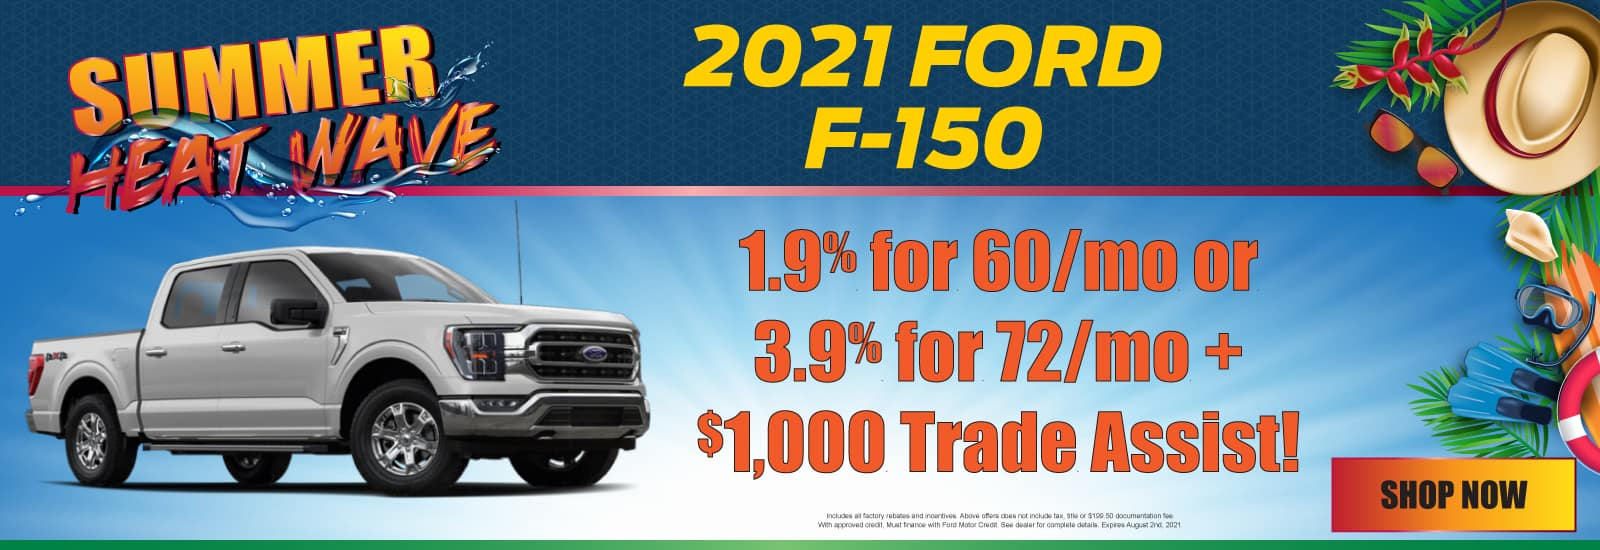 July2021-Ford-F-150-Web-Banner-1600×550